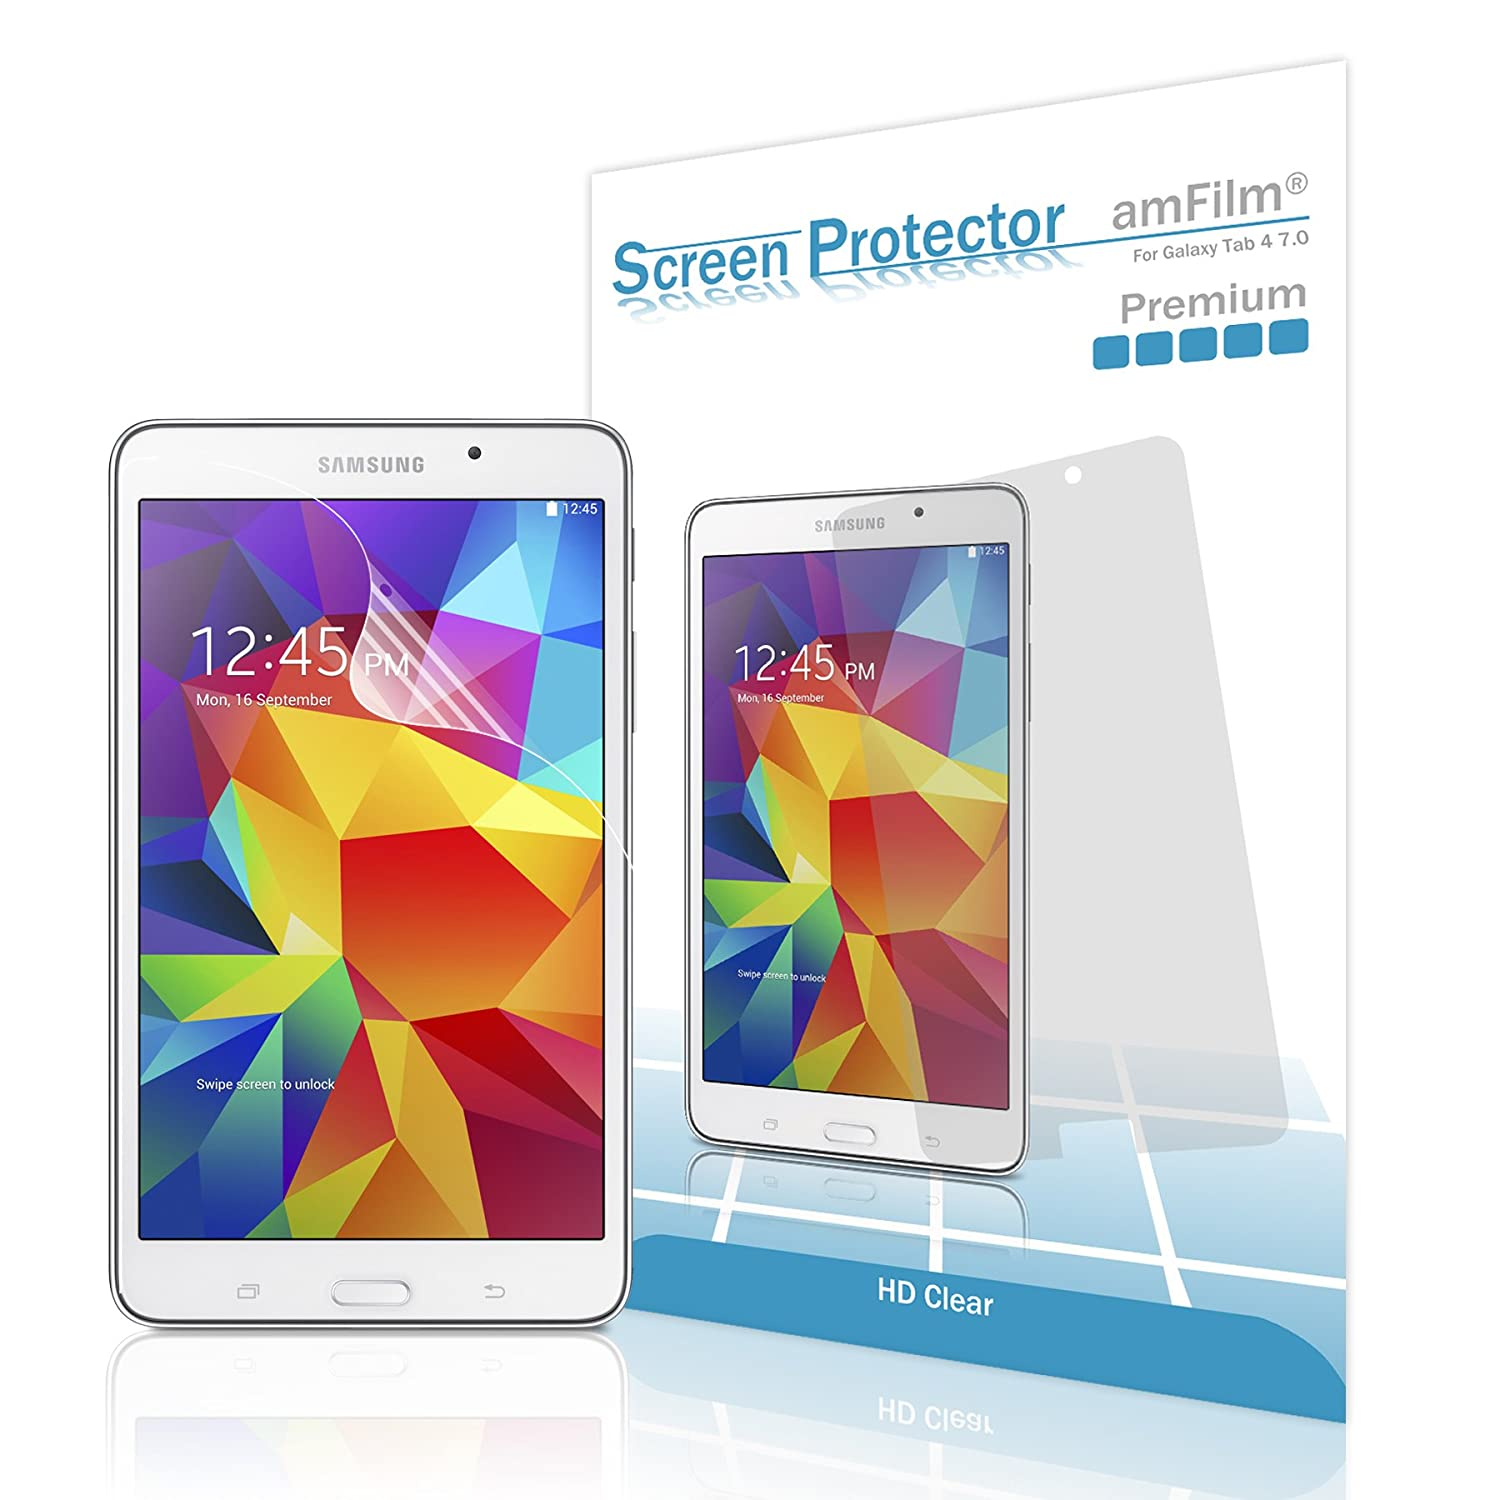 Amazon.com: Galaxy Tab 4 7.0 Screen Protector, amFilm Screen Protector for  Samsung Galaxy Tab 4 7.0 inch Premium HD Clear (2-Pack): Computers &  Accessories